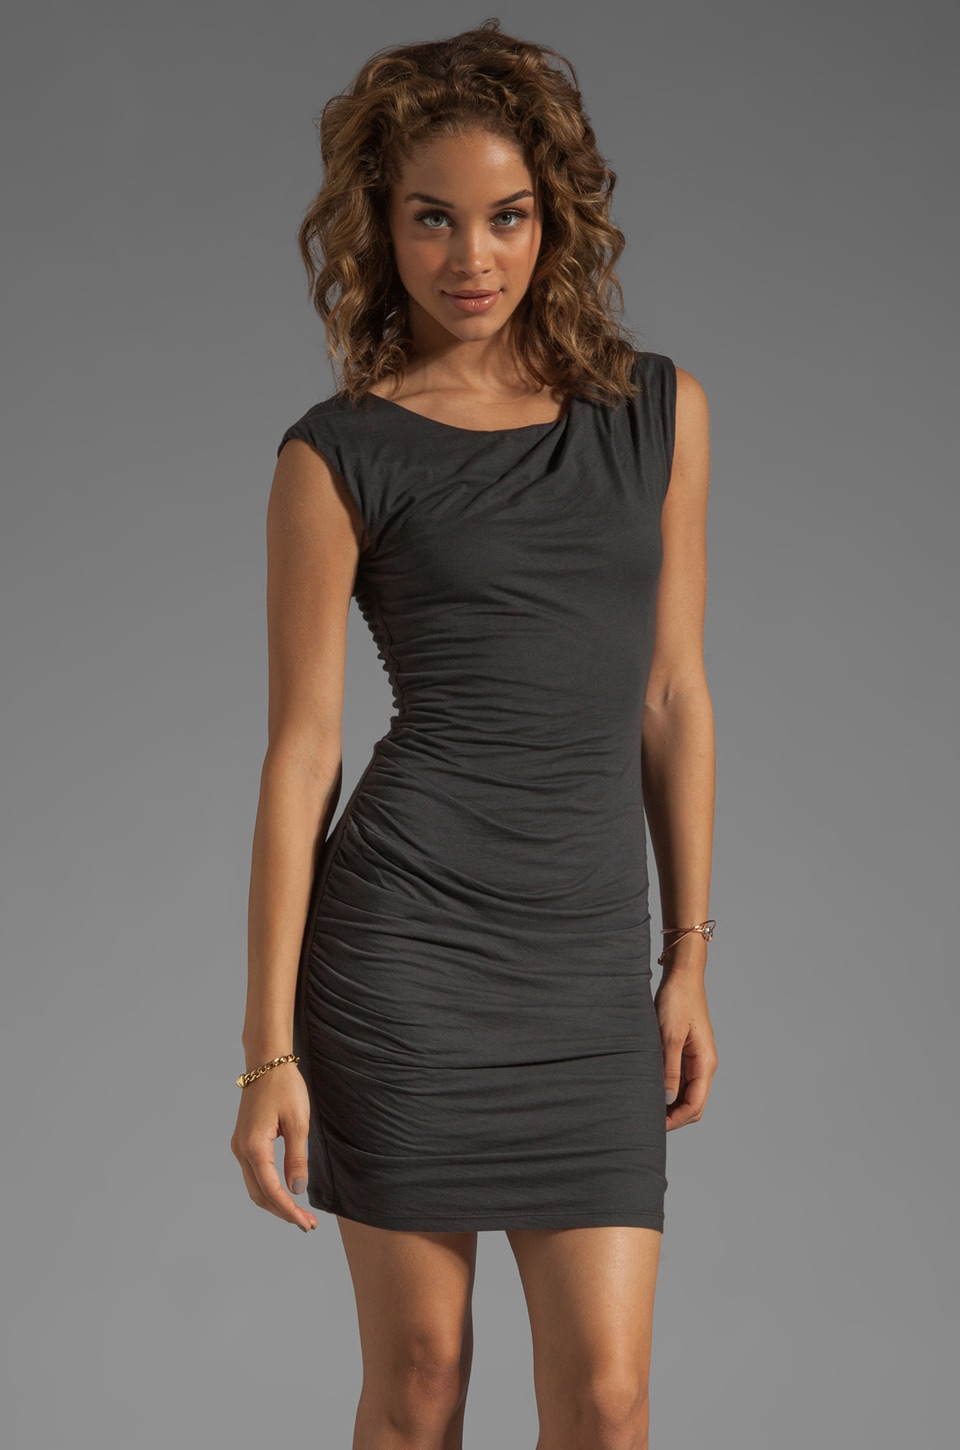 Velvet by Graham & Spencer Carew Gauzy Whisper Dress in Graphite